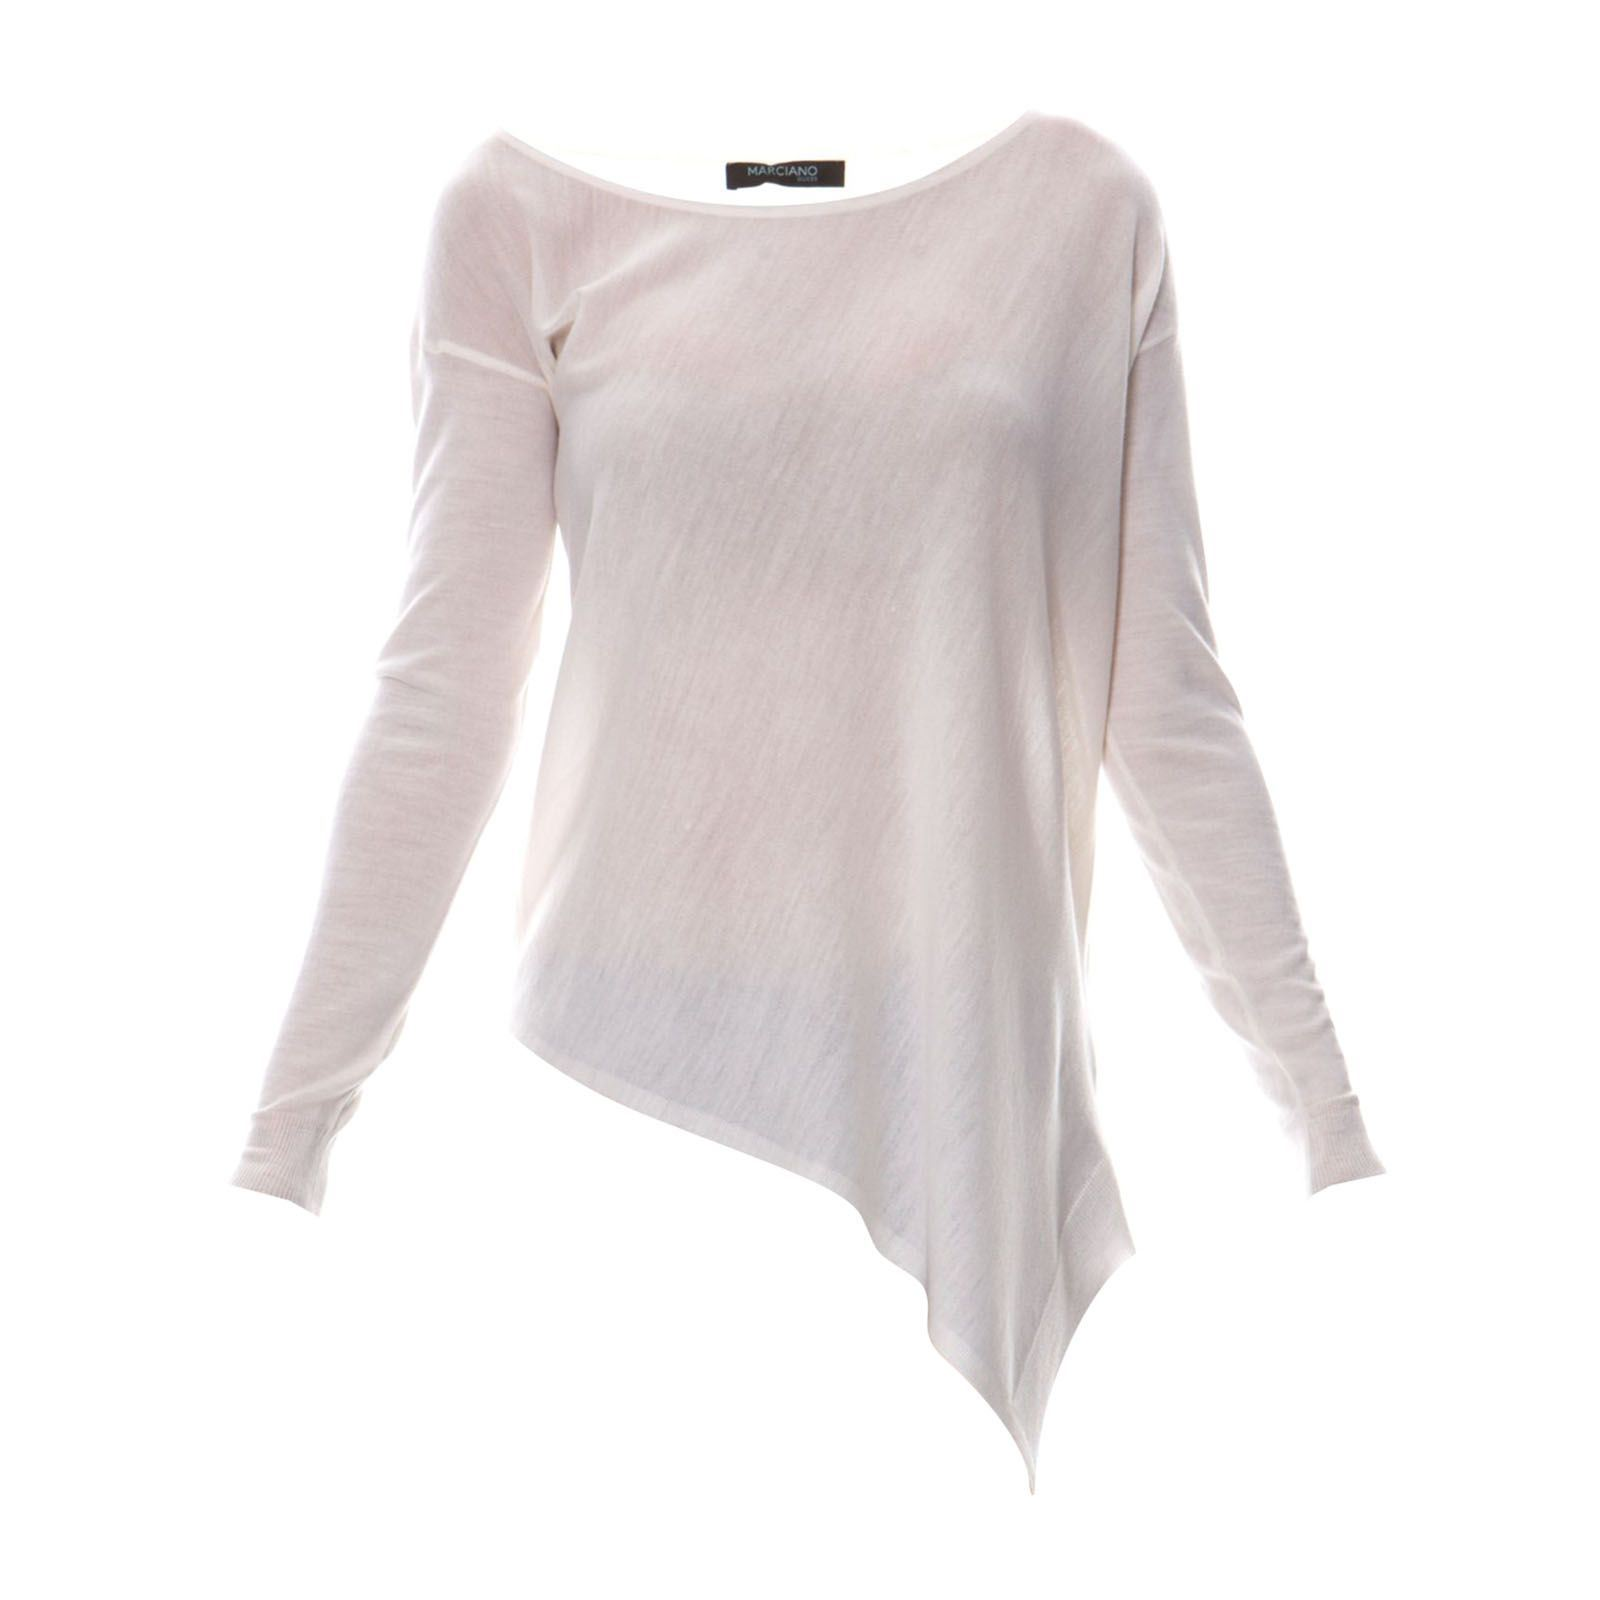 Marciano Guess :  Pull - en laine blanc cass�